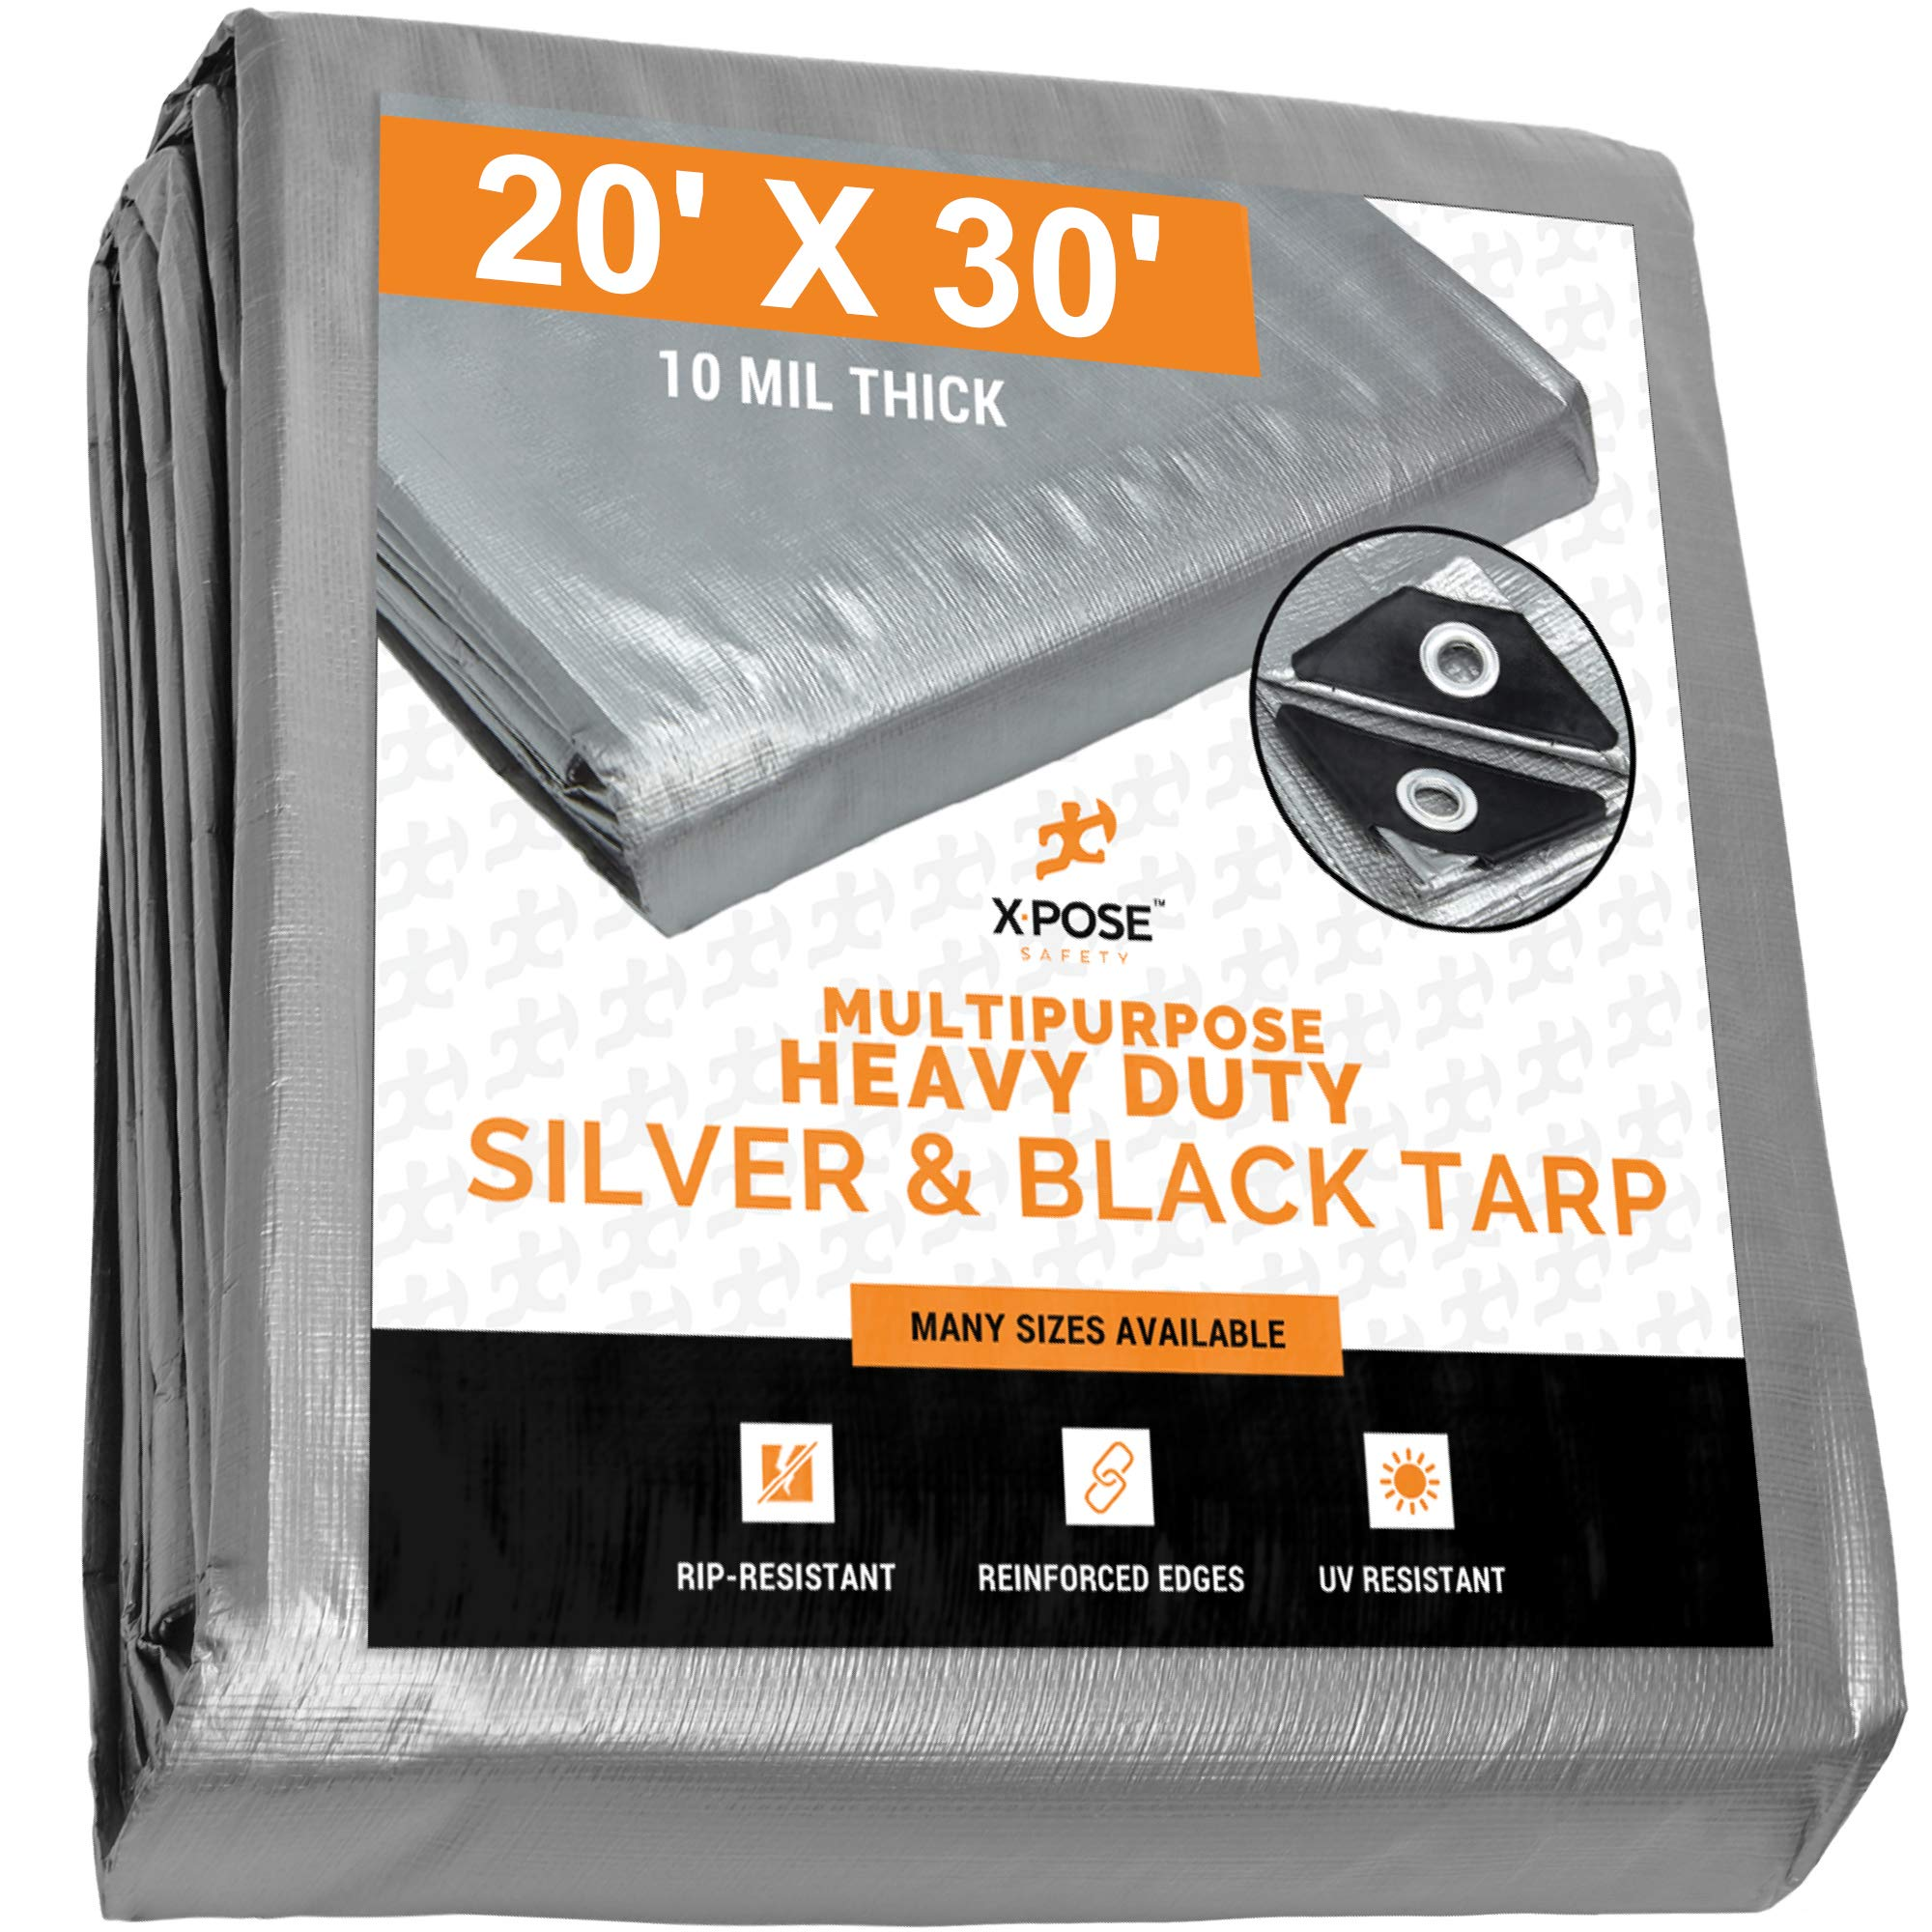 Heavy Duty Poly Tarp - 20' x 30' - 10 Mil Thick Waterproof, UV Blocking Protective Cover - Reversible Silver and Black - Laminated Coating - Rustproof Grommets - by Xpose Safety by Xpose Safety